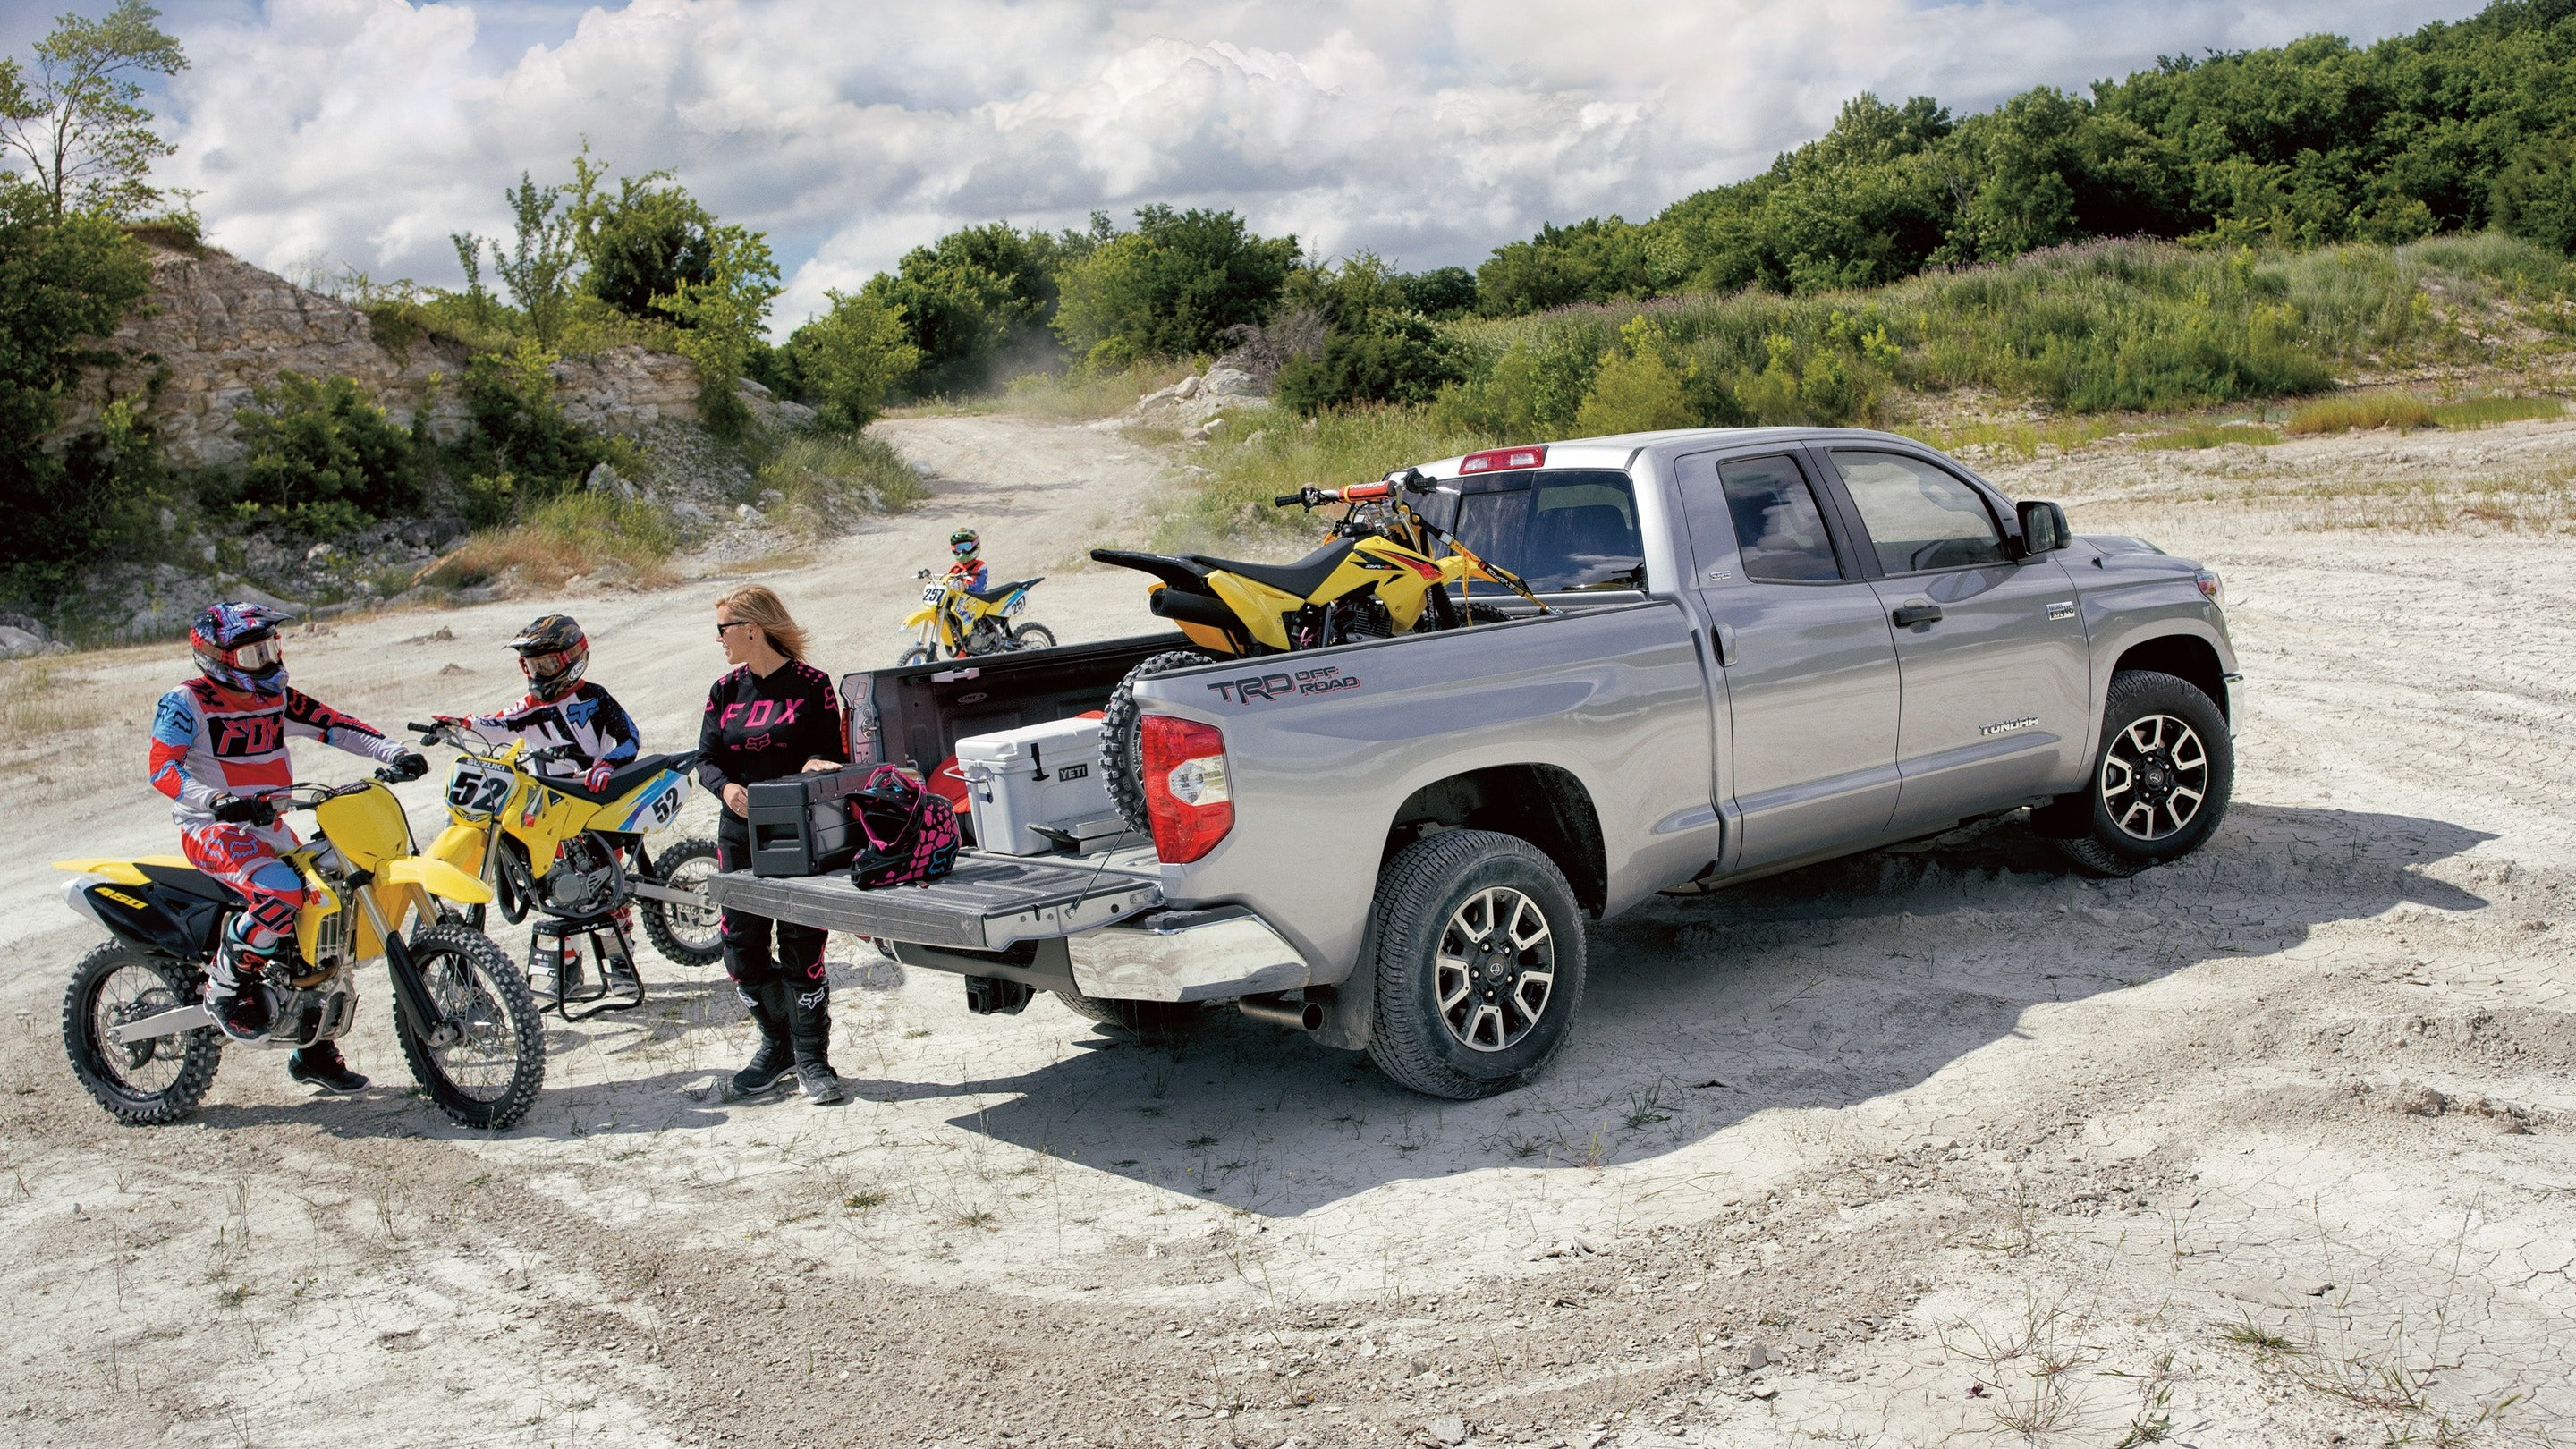 tundra with motorcycle in back